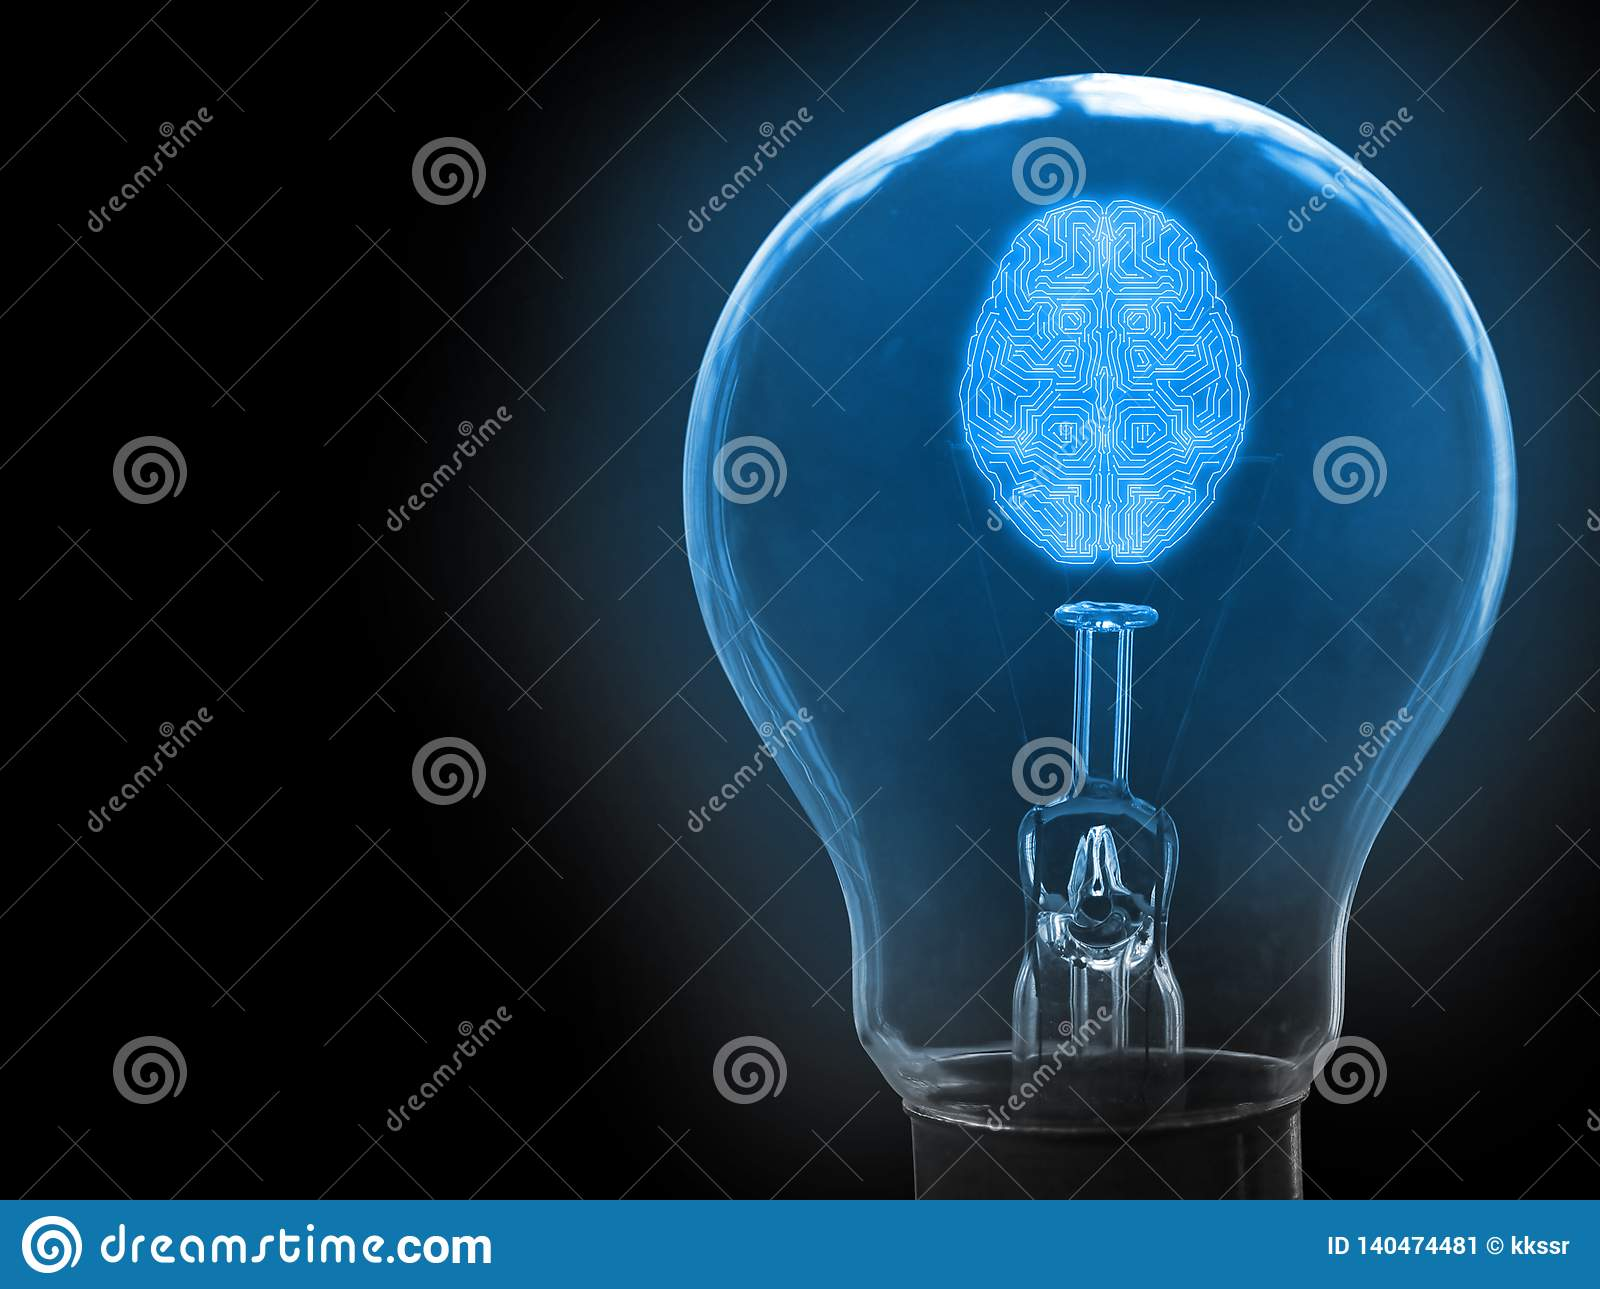 Abstract mechanic artificial intelligence android brain in light bulb. Concept of getting new idea using AI to facilitate.